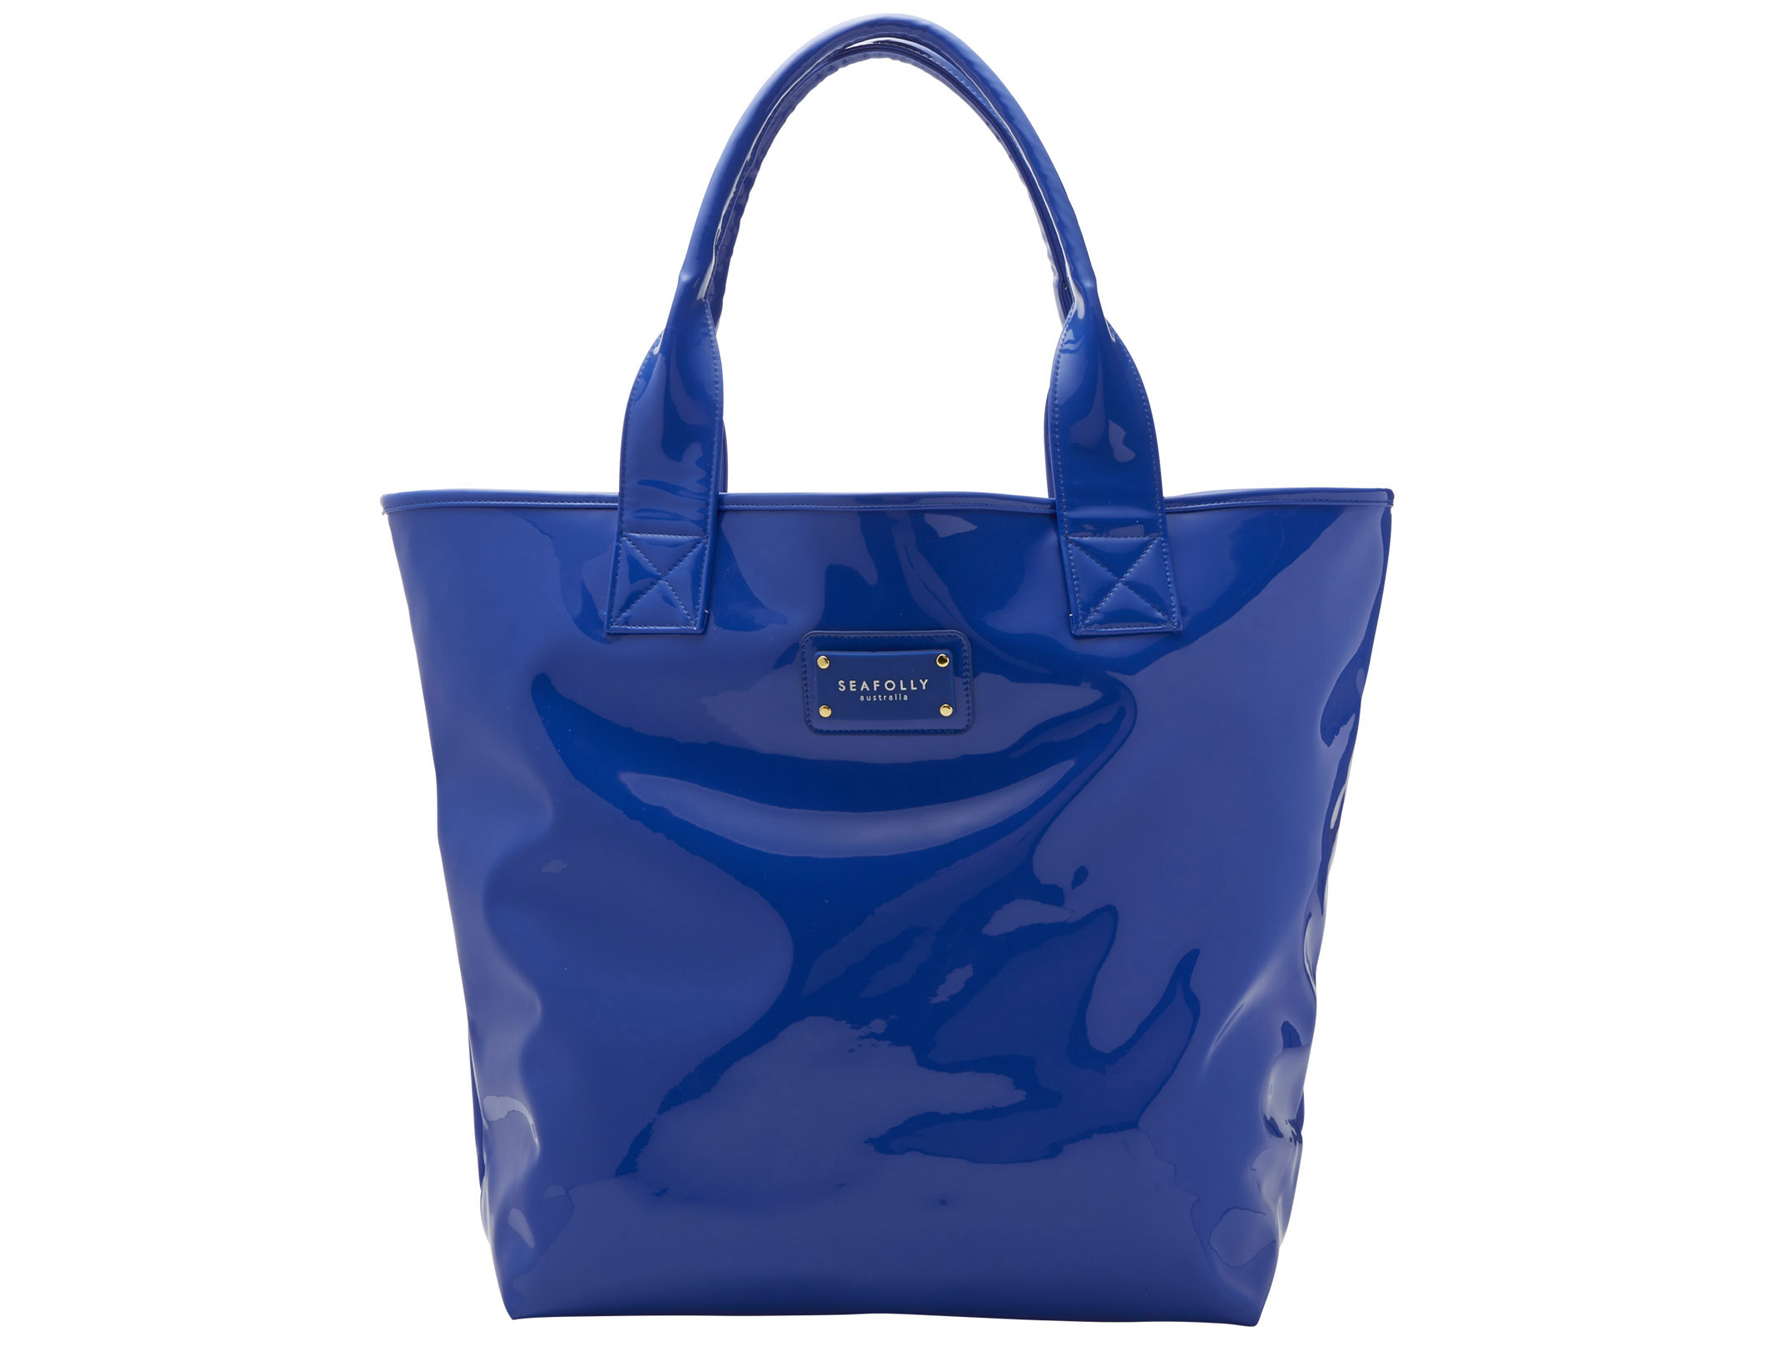 Seafolly Hit The Beach Tote Bag in Blue | Lyst